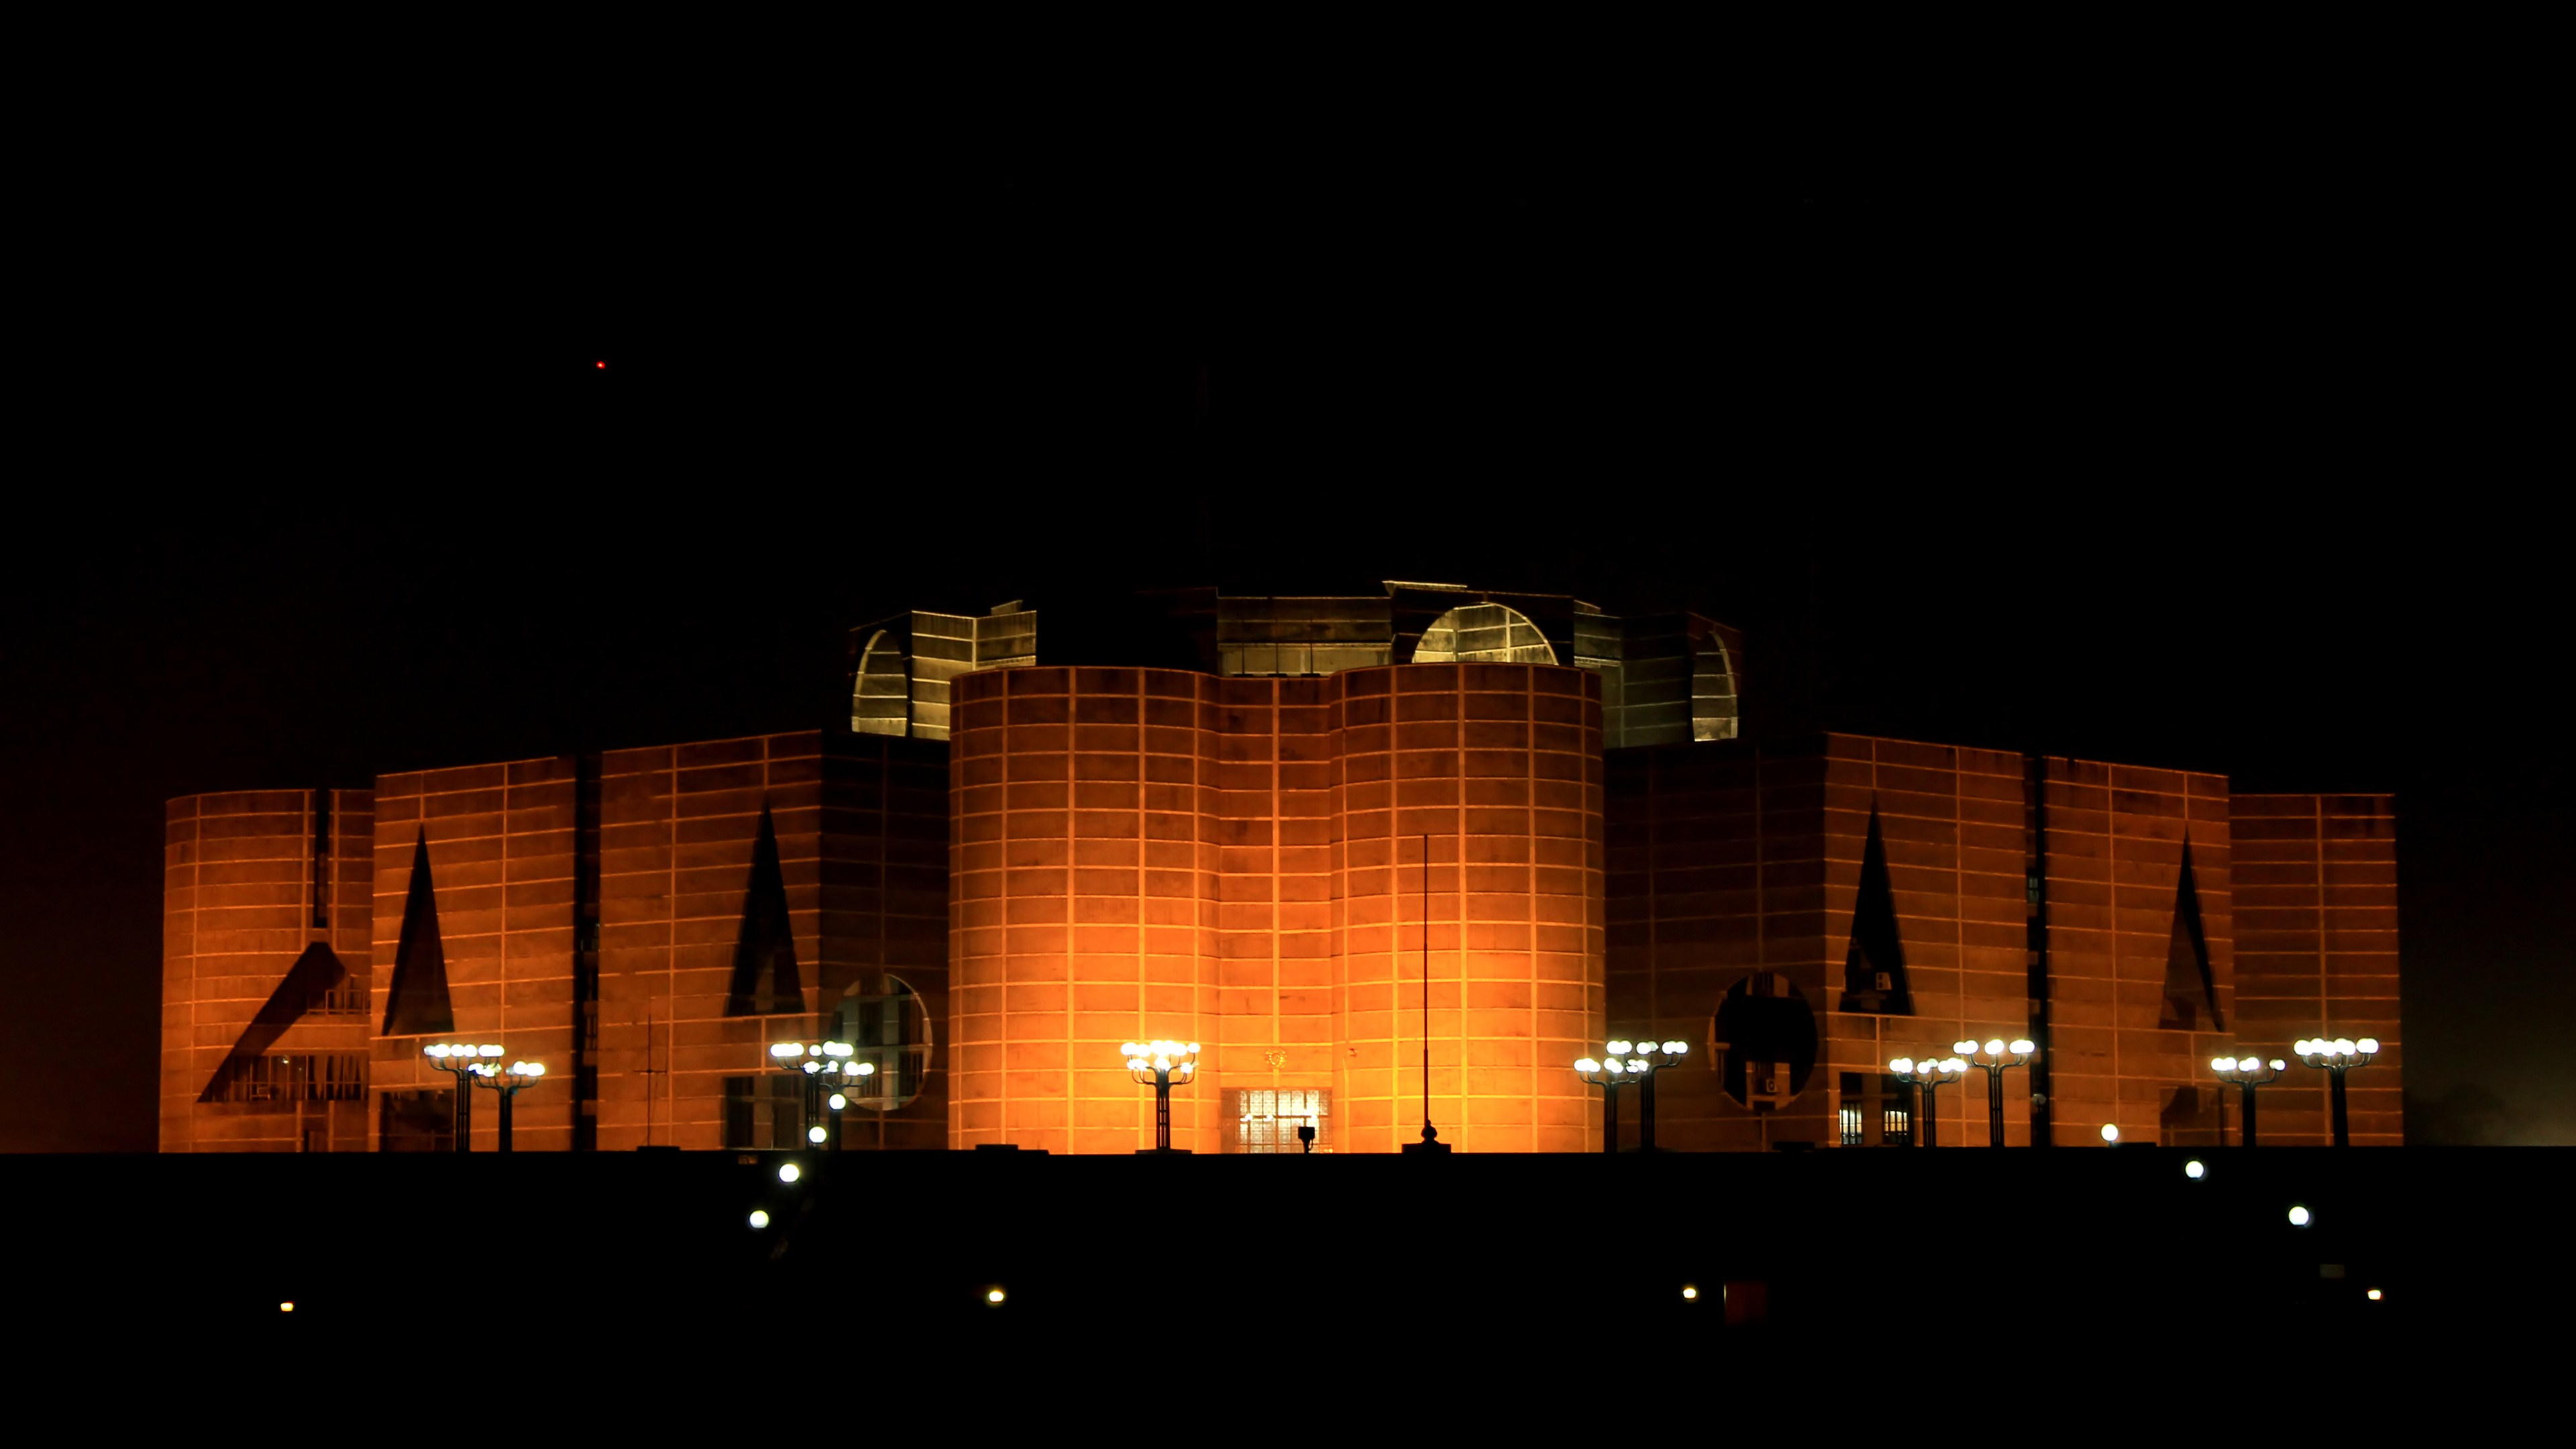 1 parlament house of bangladesh hd wallpapers for Bangladeshi house image